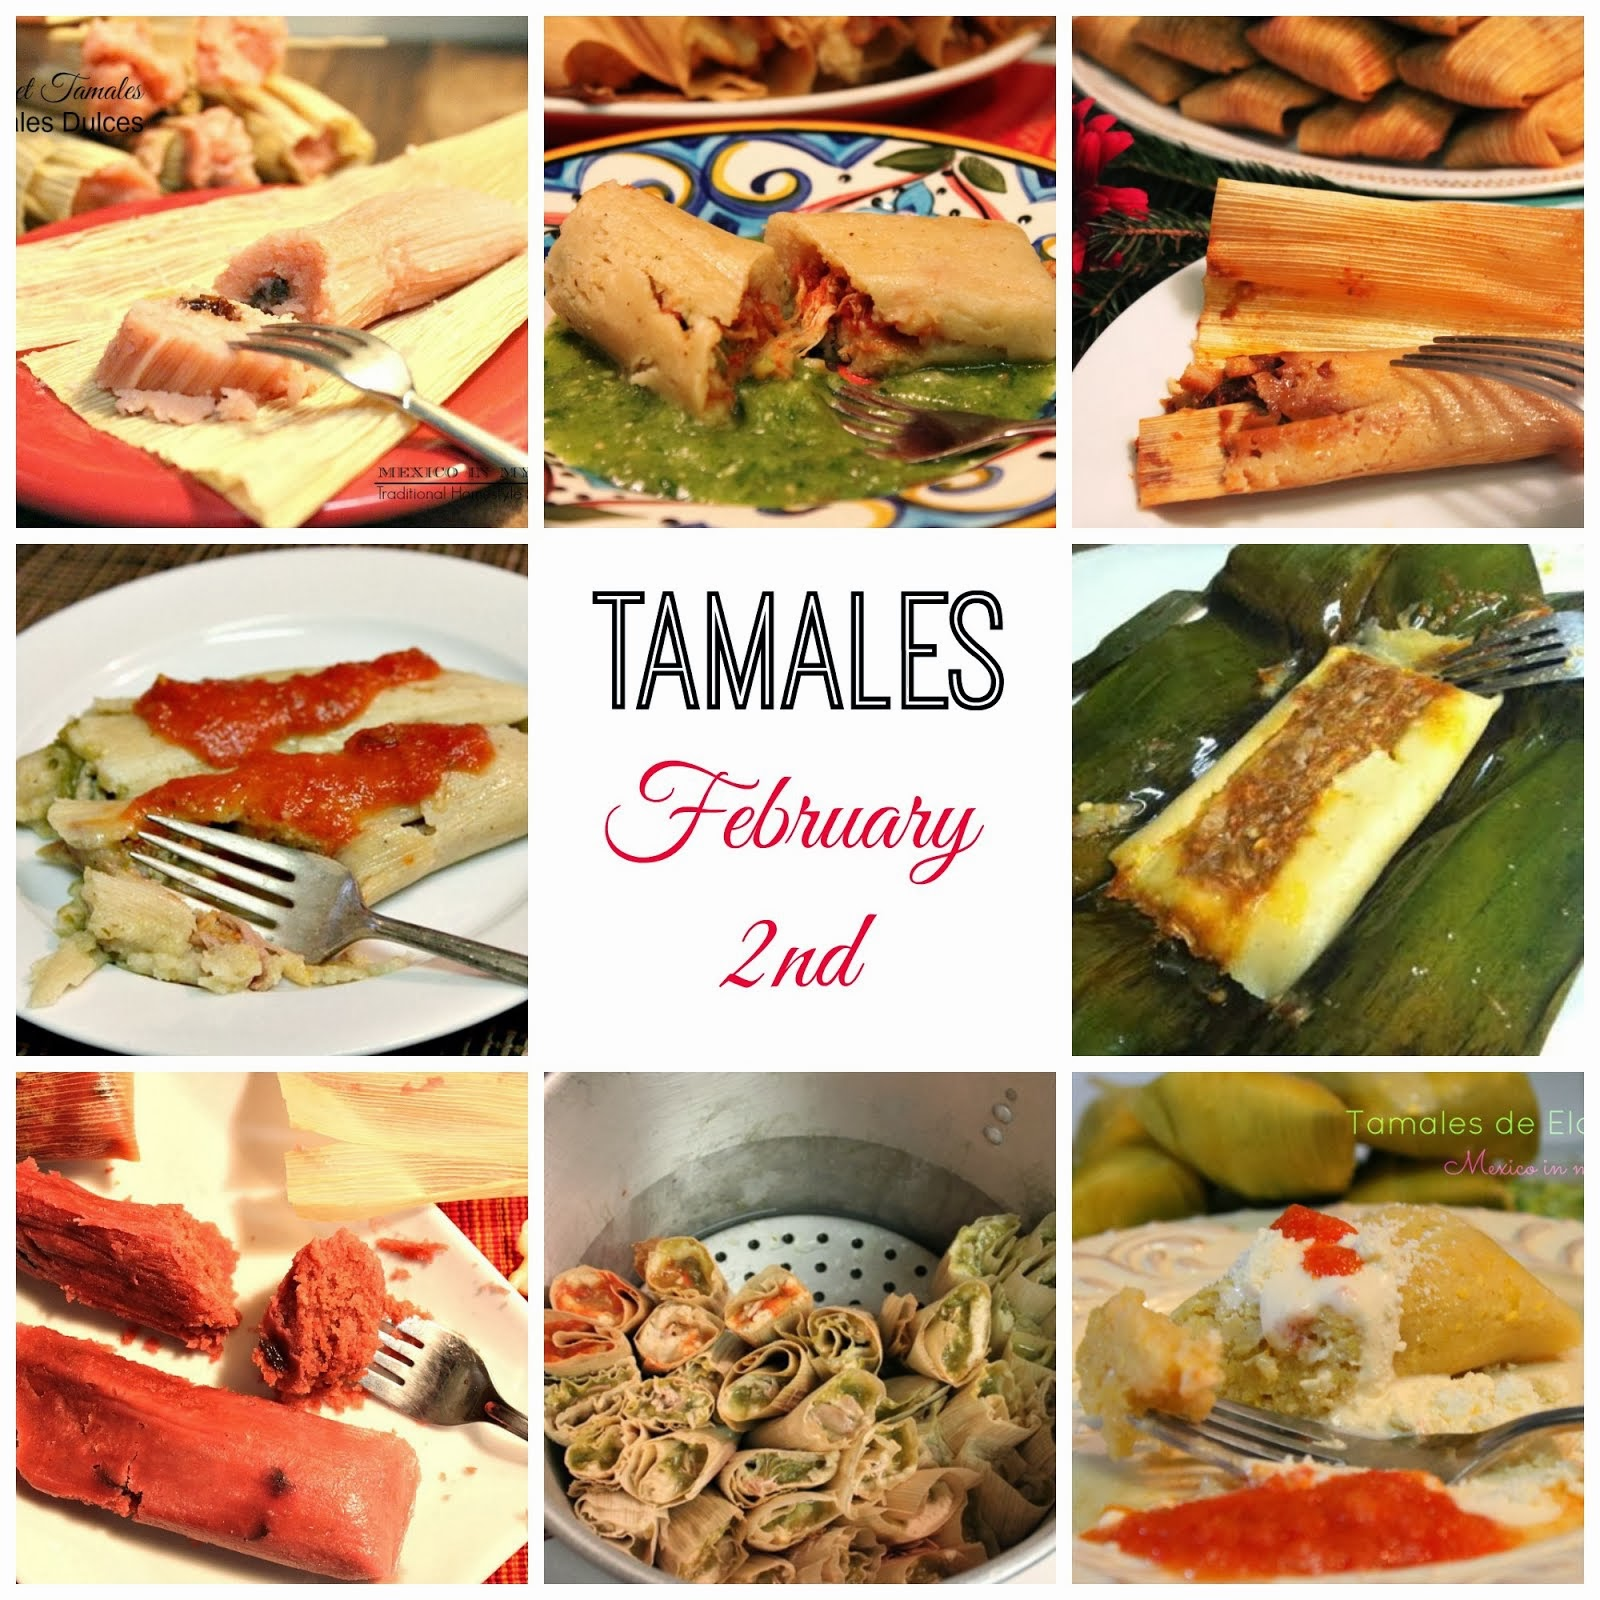 TAMALES? CHECK THE RECIPE SECTION